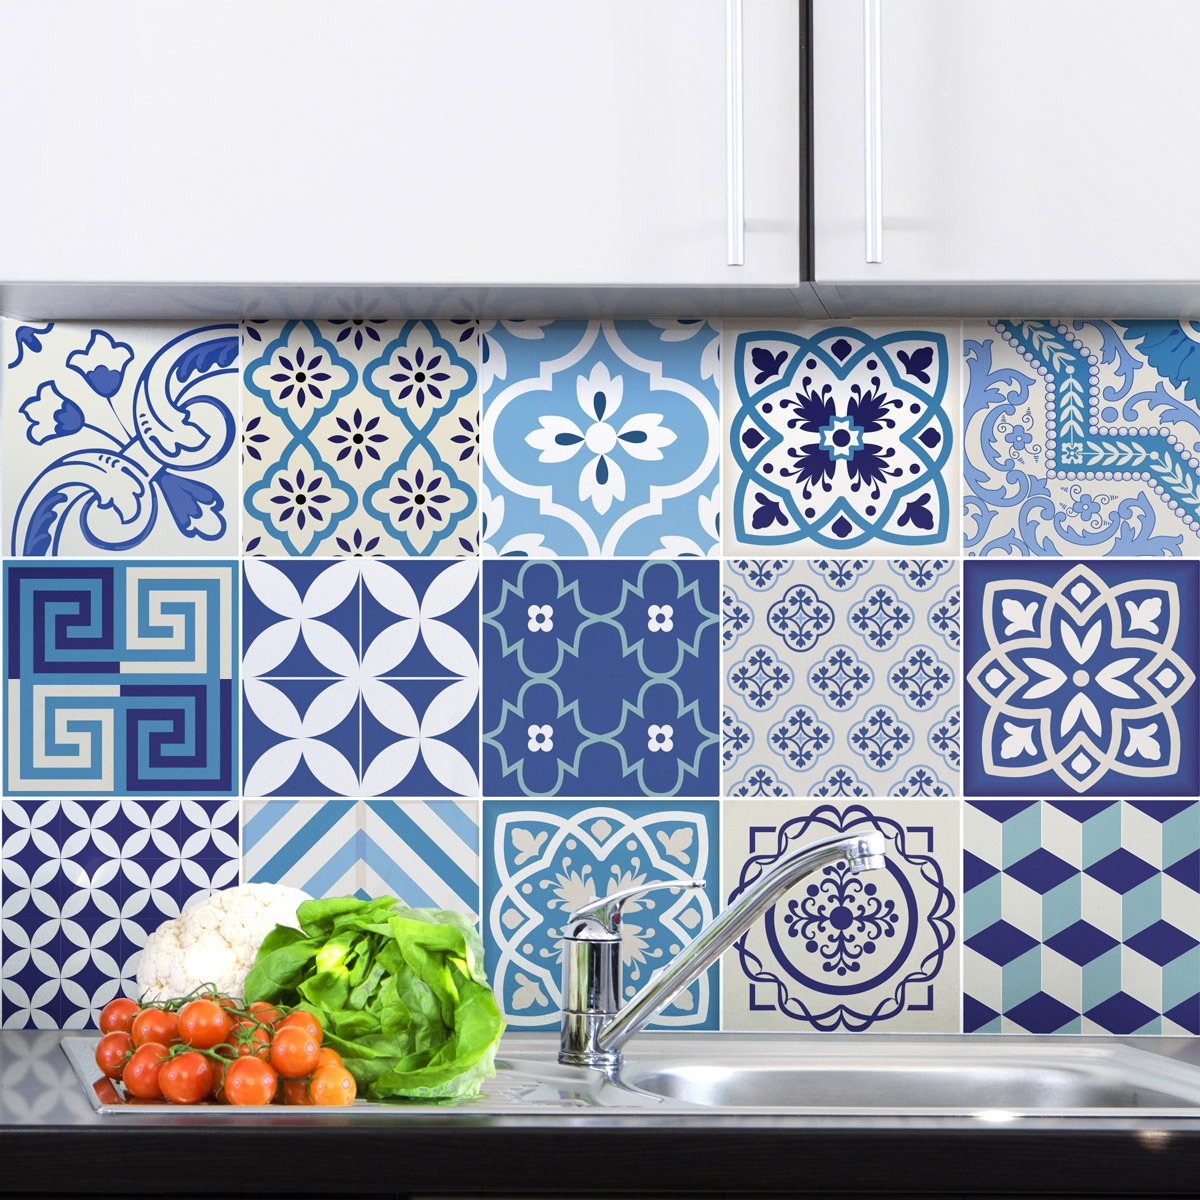 Stickers Carrelage Cuisine: 15 Stickers Carrelages Azulejos Vintage Bleu D'Azure